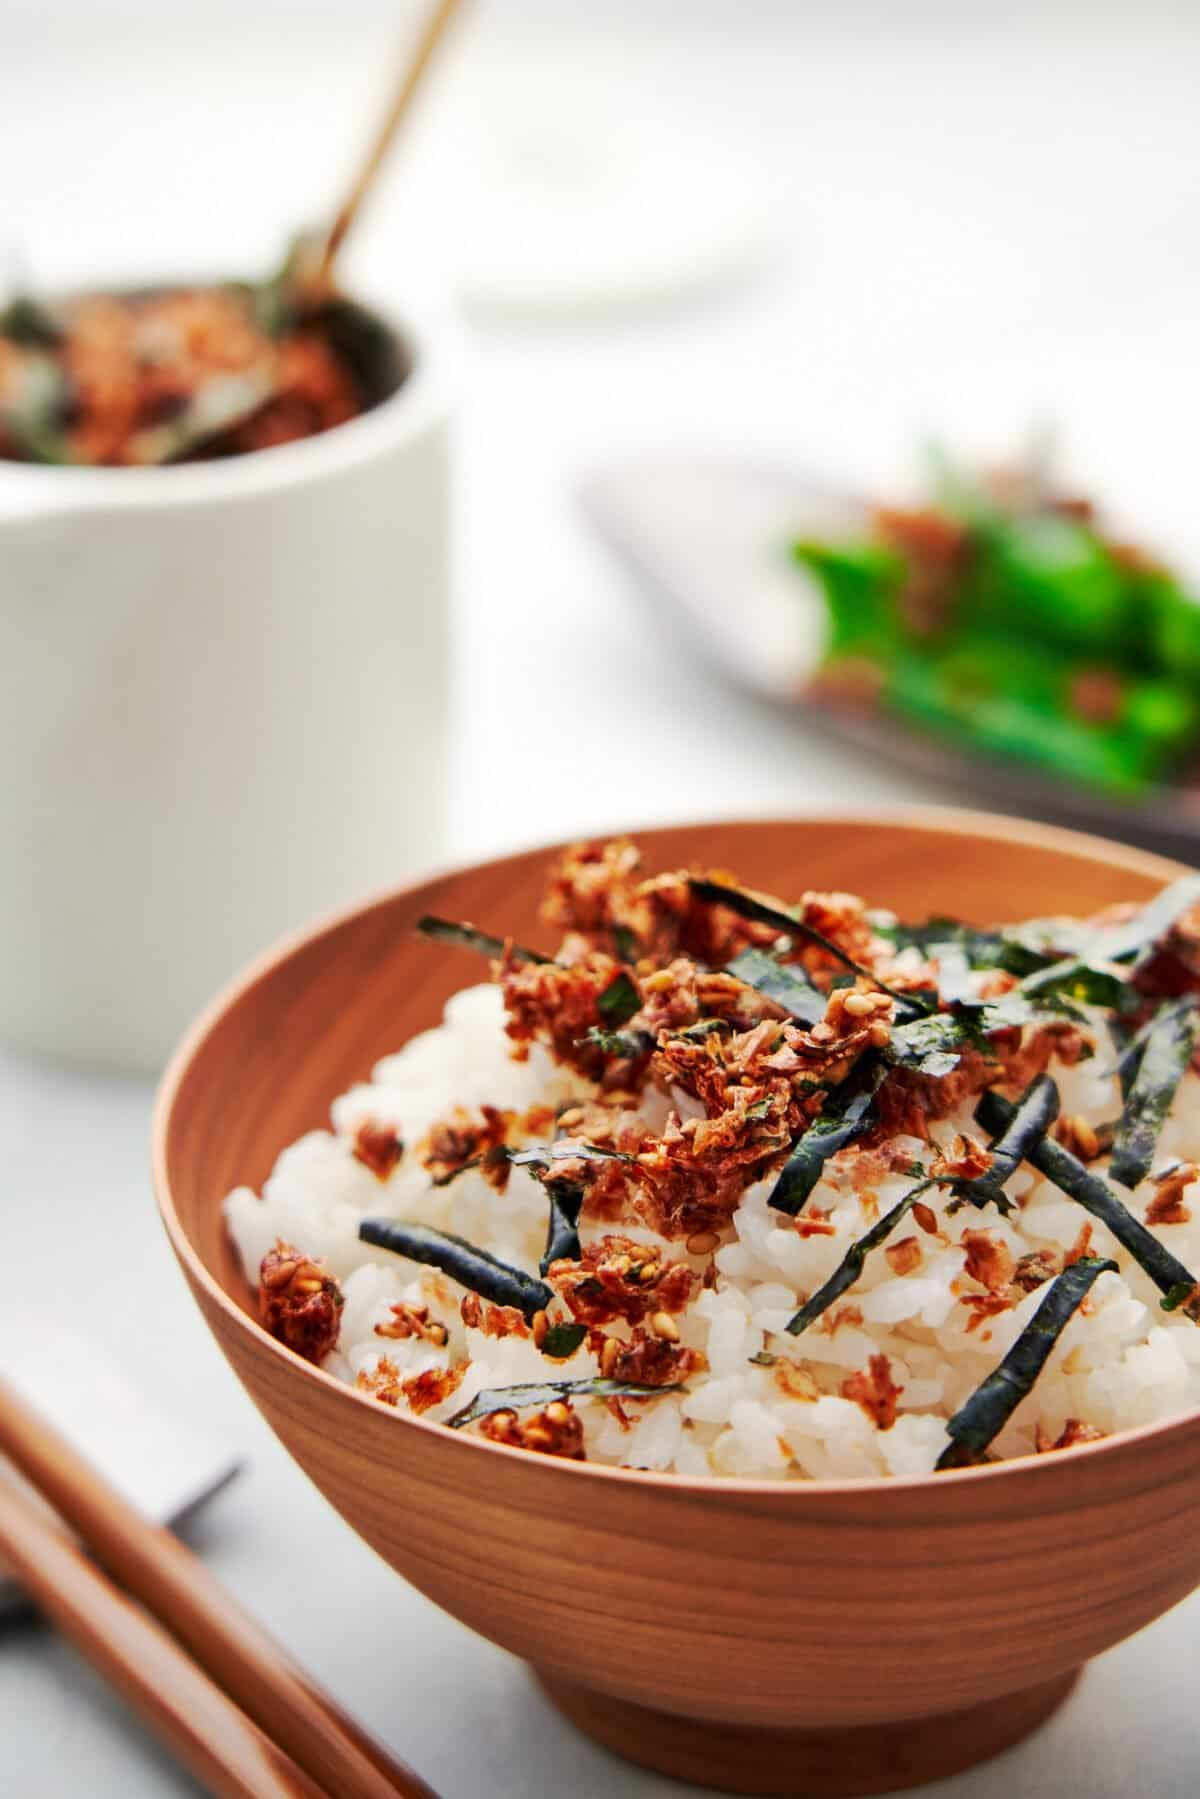 Make this delicious crispy Japanese rice seasoning with this Furikake recipe. Great on popcorn, Chex mix, and french fries.